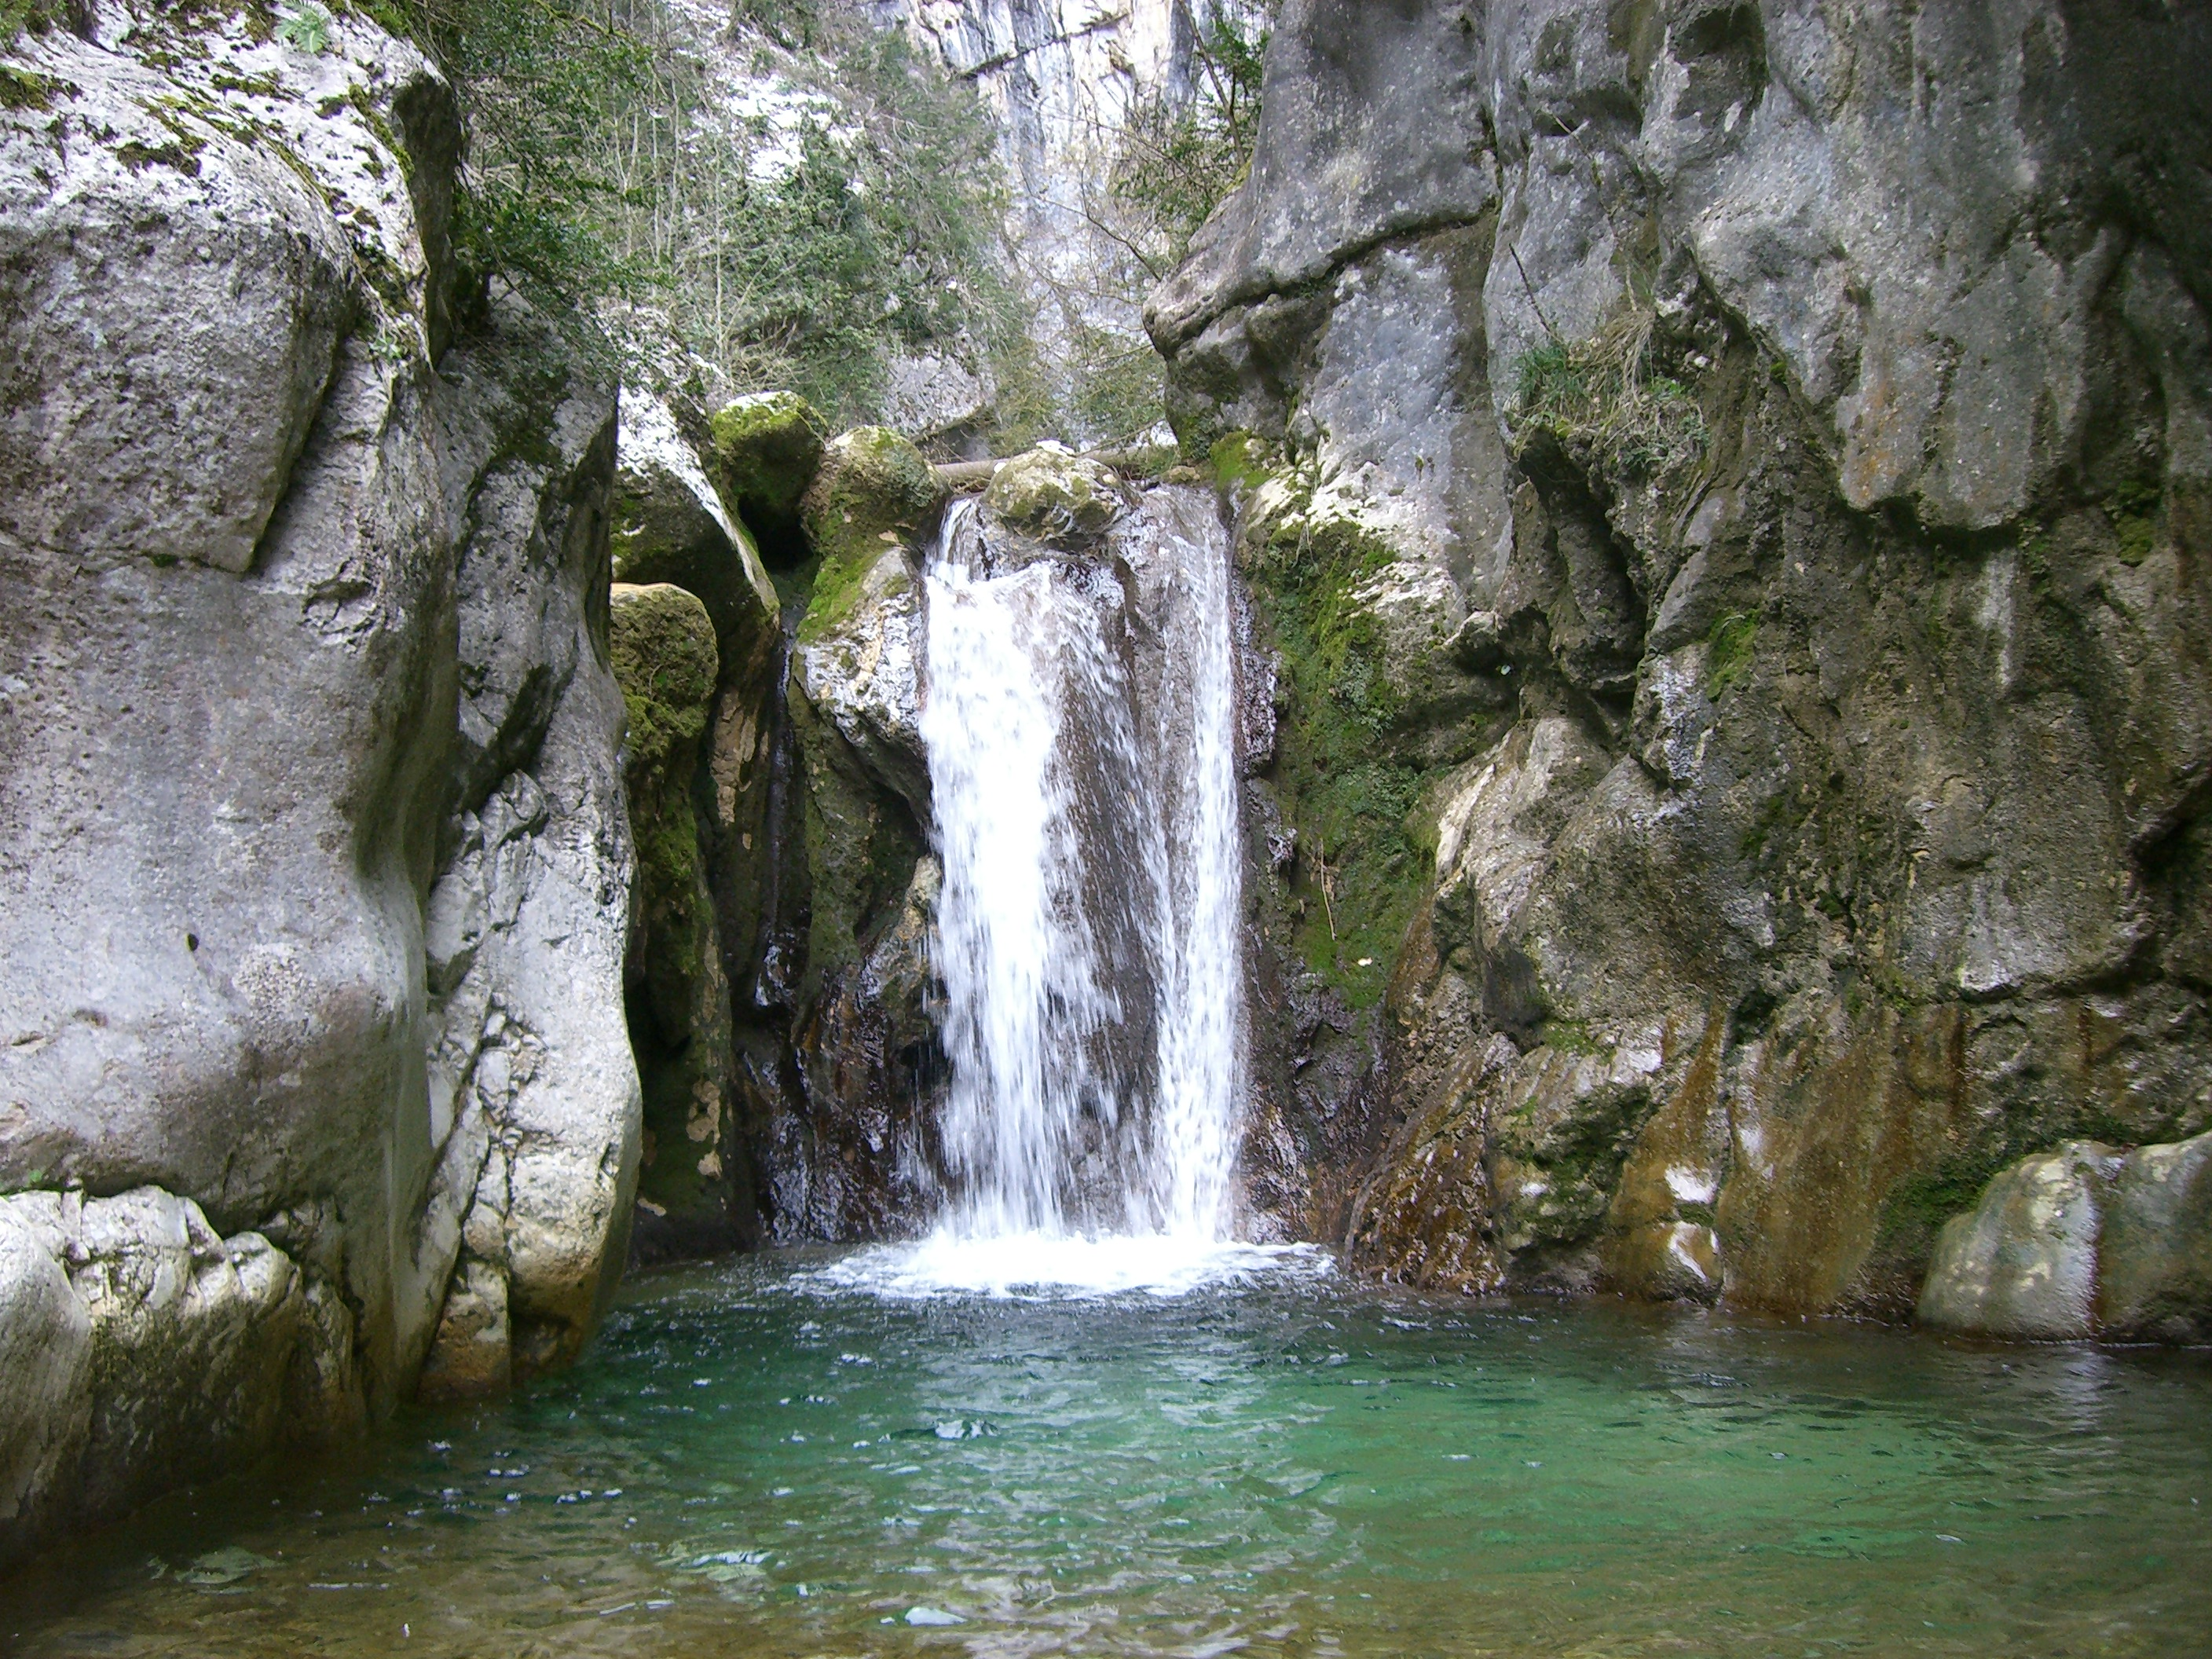 File:Cascade - Cognin-les-Gorges.JPG - Wikimedia Commons